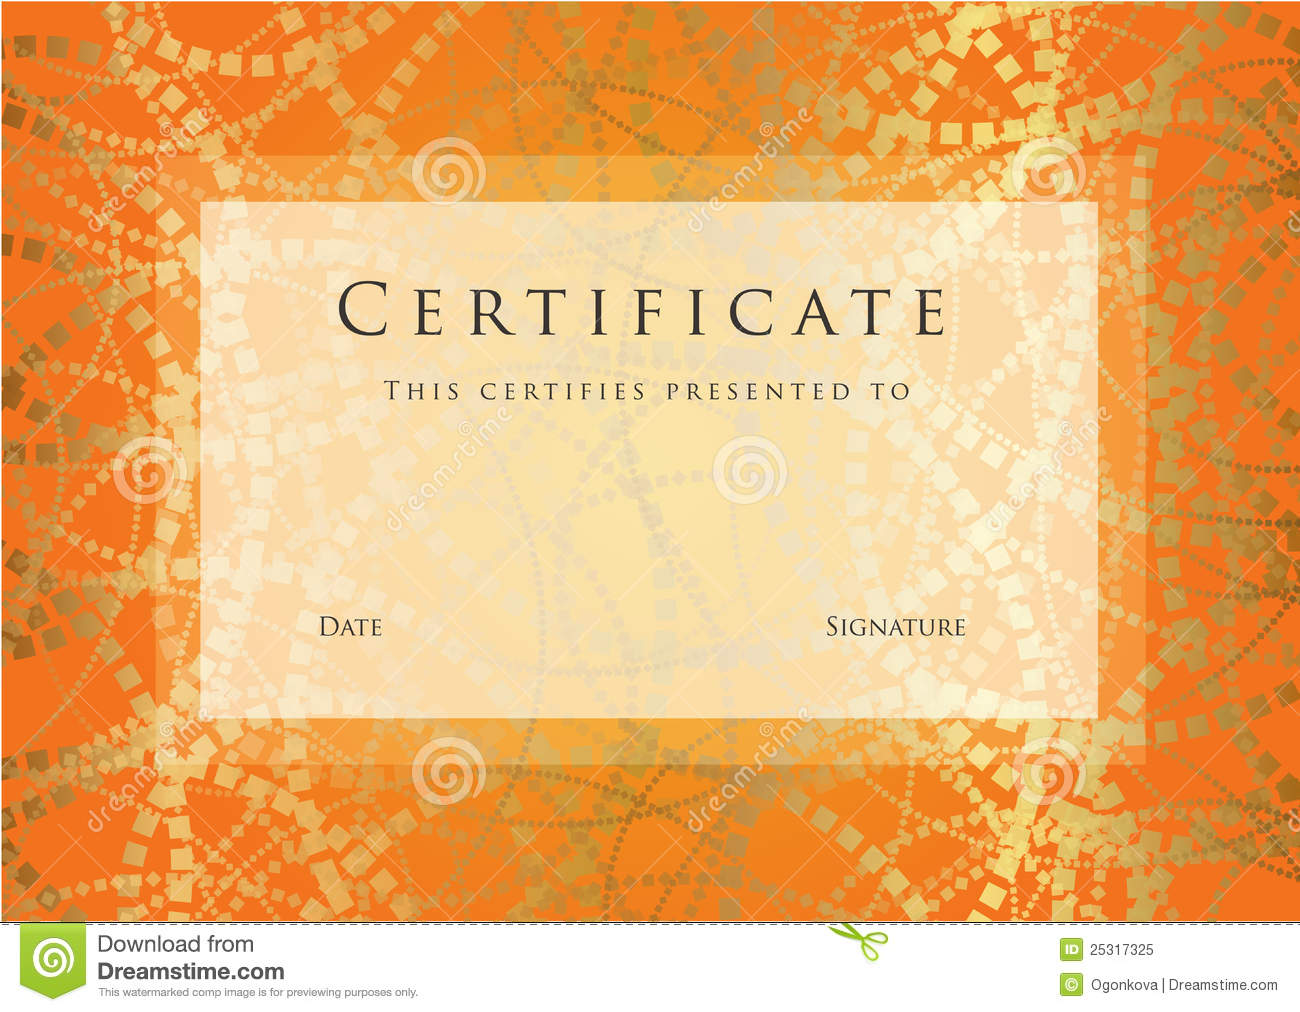 orange award certificate template resume builder orange award certificate template formal award certificate templates orange certificate of achievement certificate of education coupon